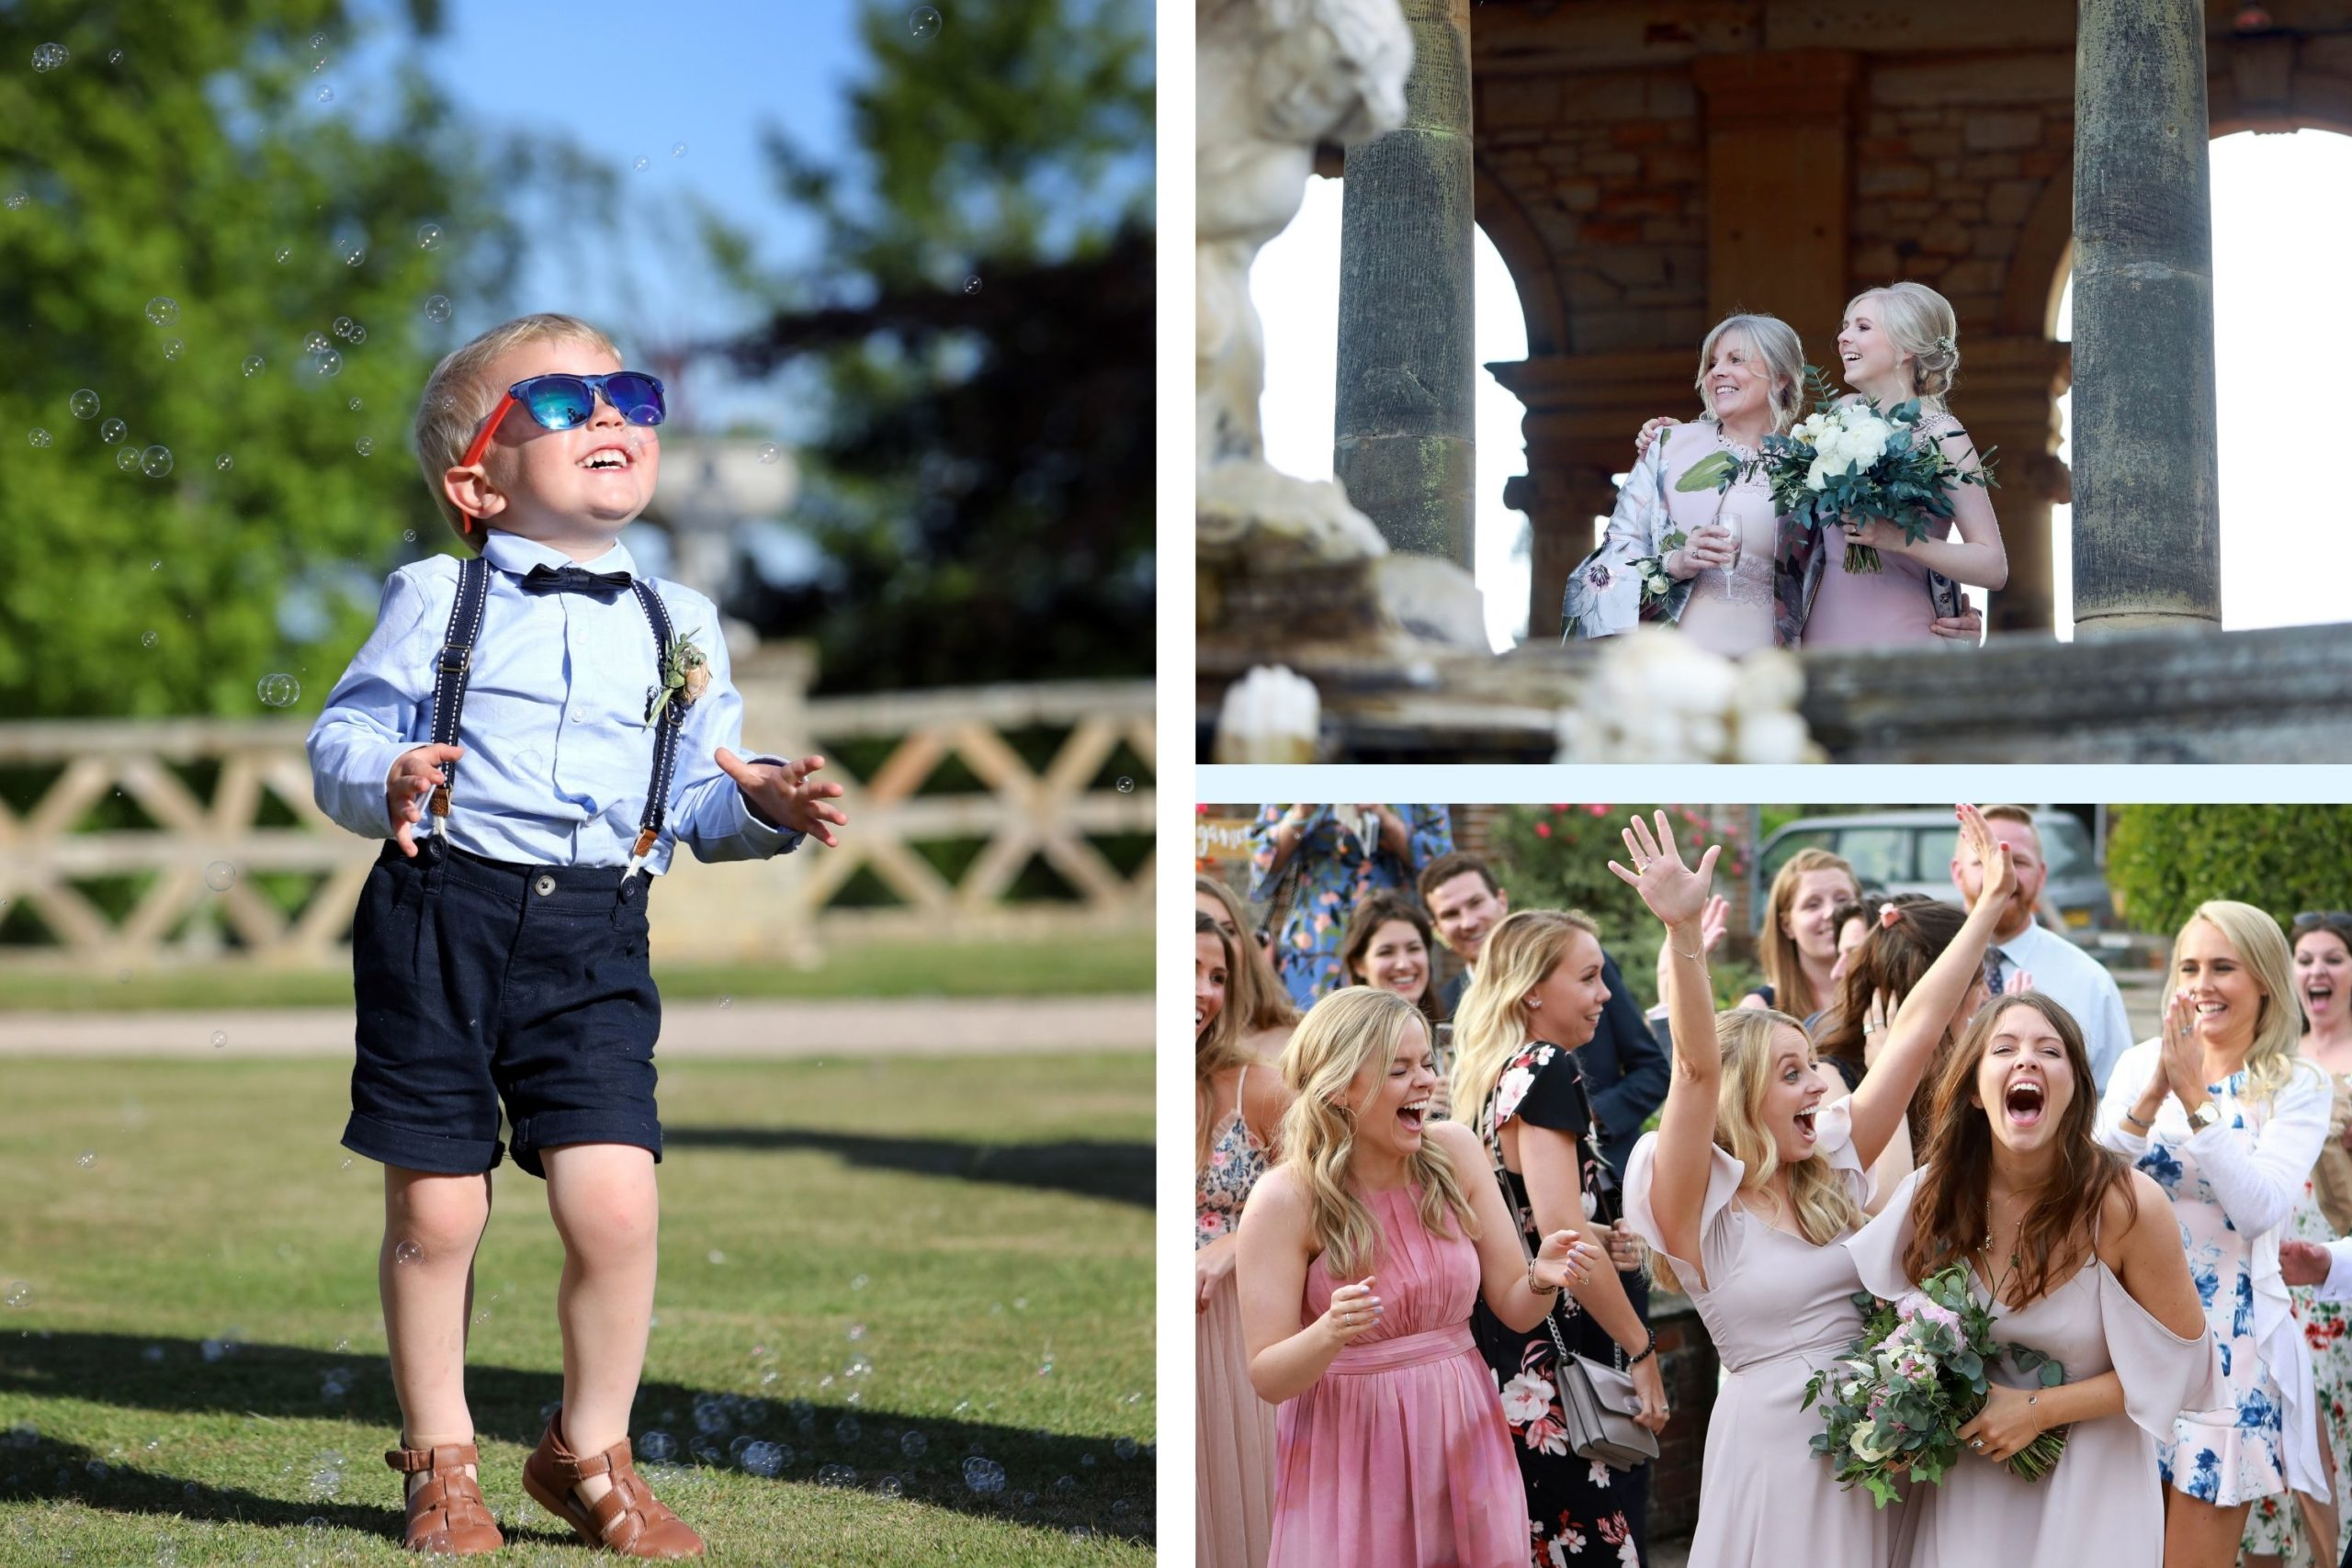 candid wedding photography portraits in colour